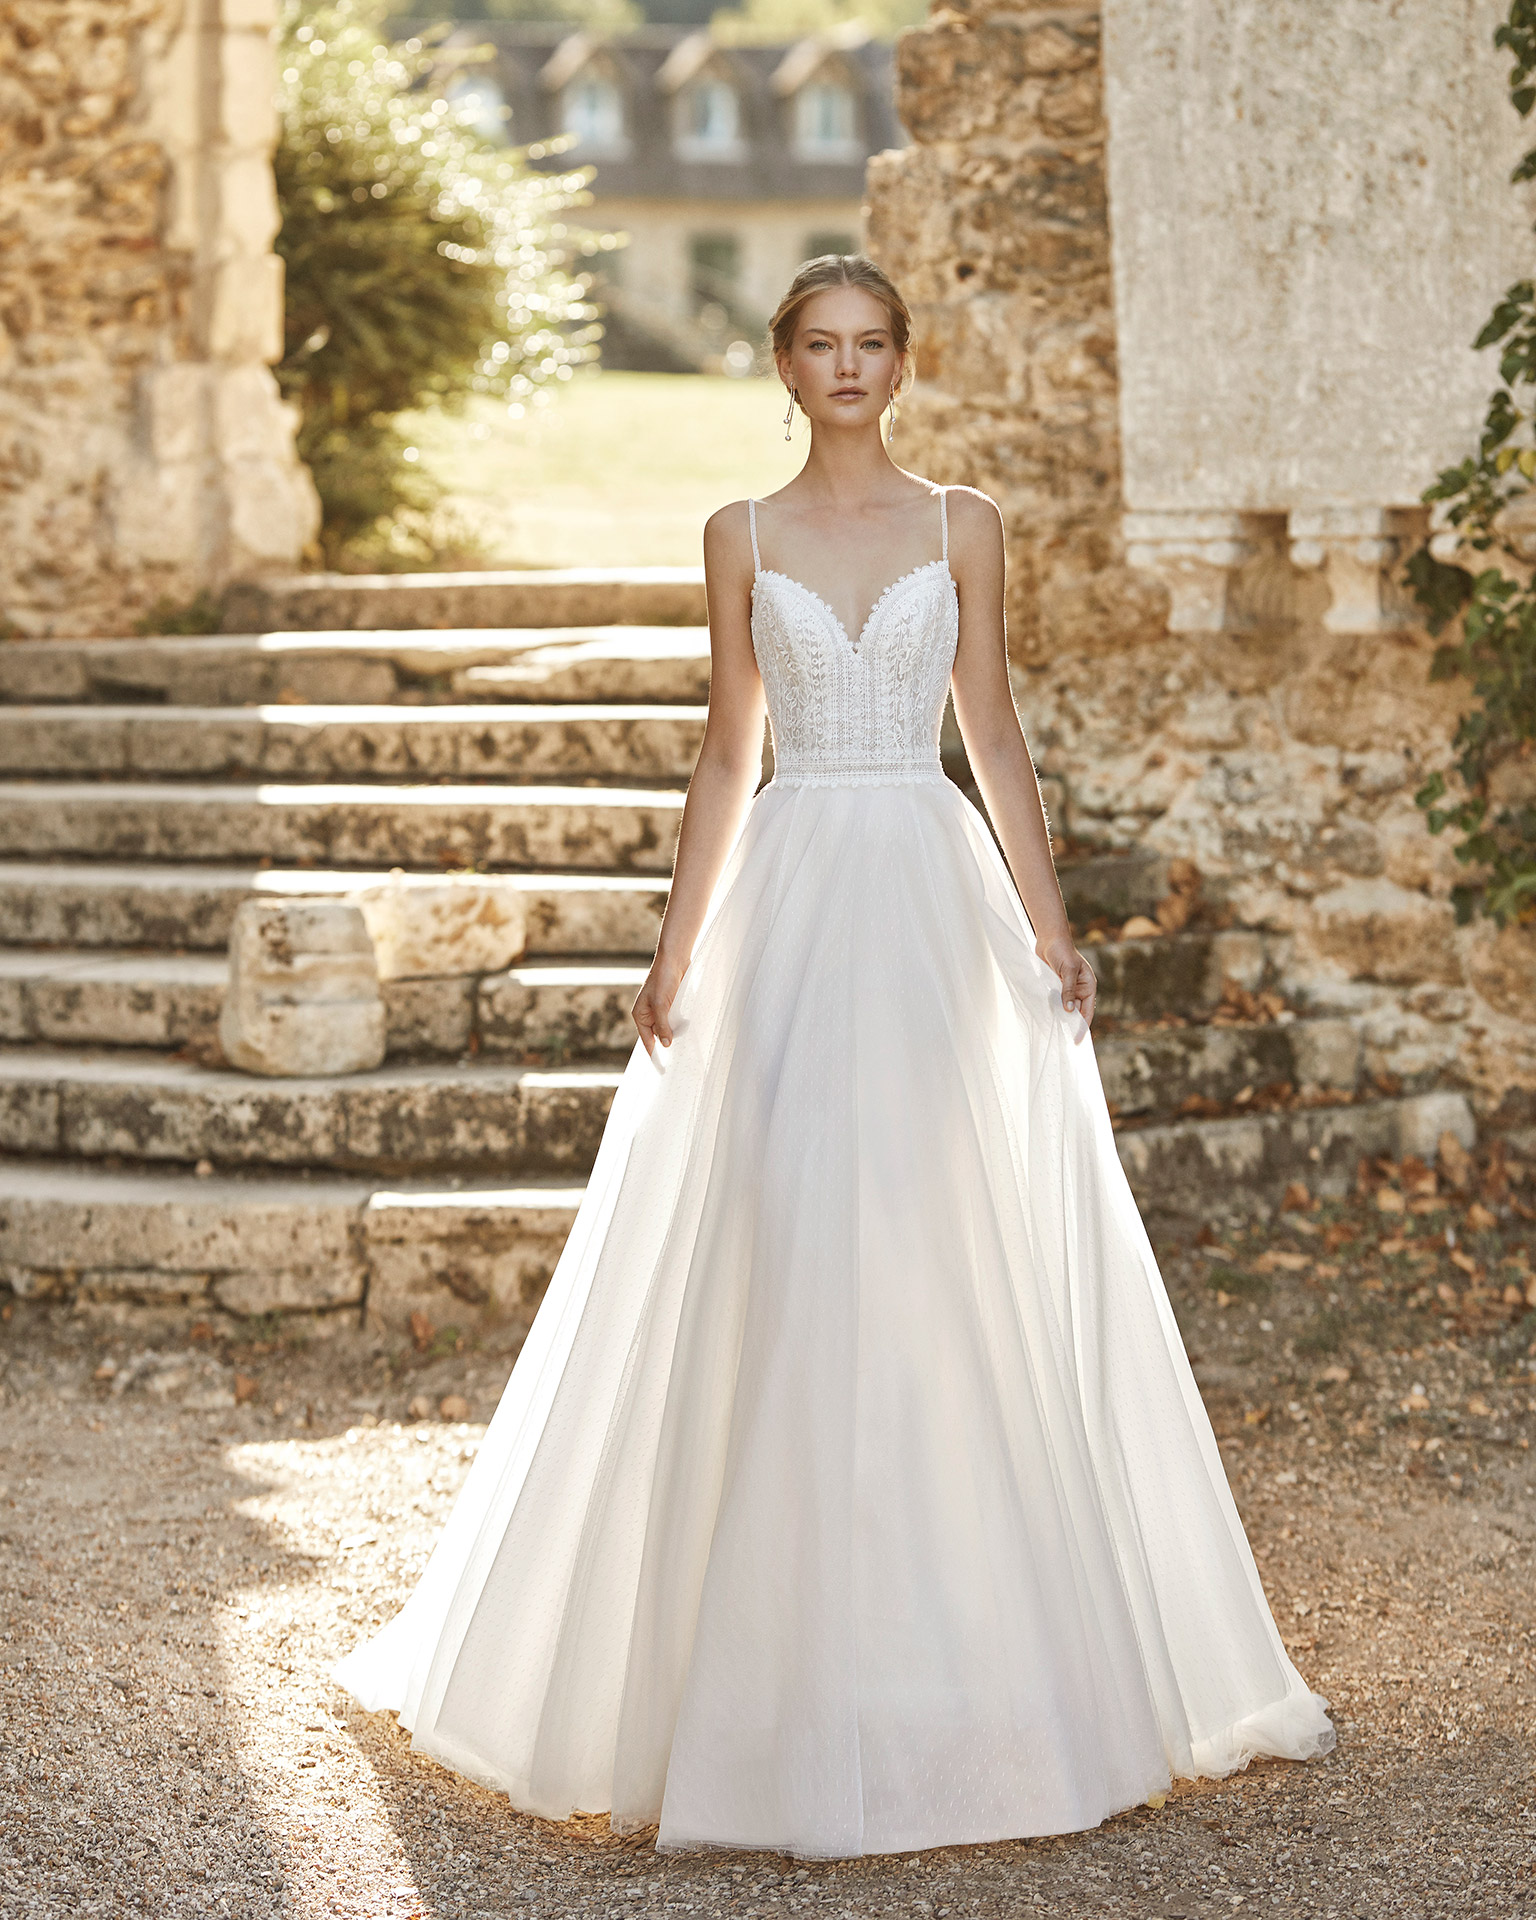 Wedding dress in dot tulle. Sweetheart neckline in lace, beaded spaghetti shoulder straps and low U-back. 2021 ALMANOVIA Collection.